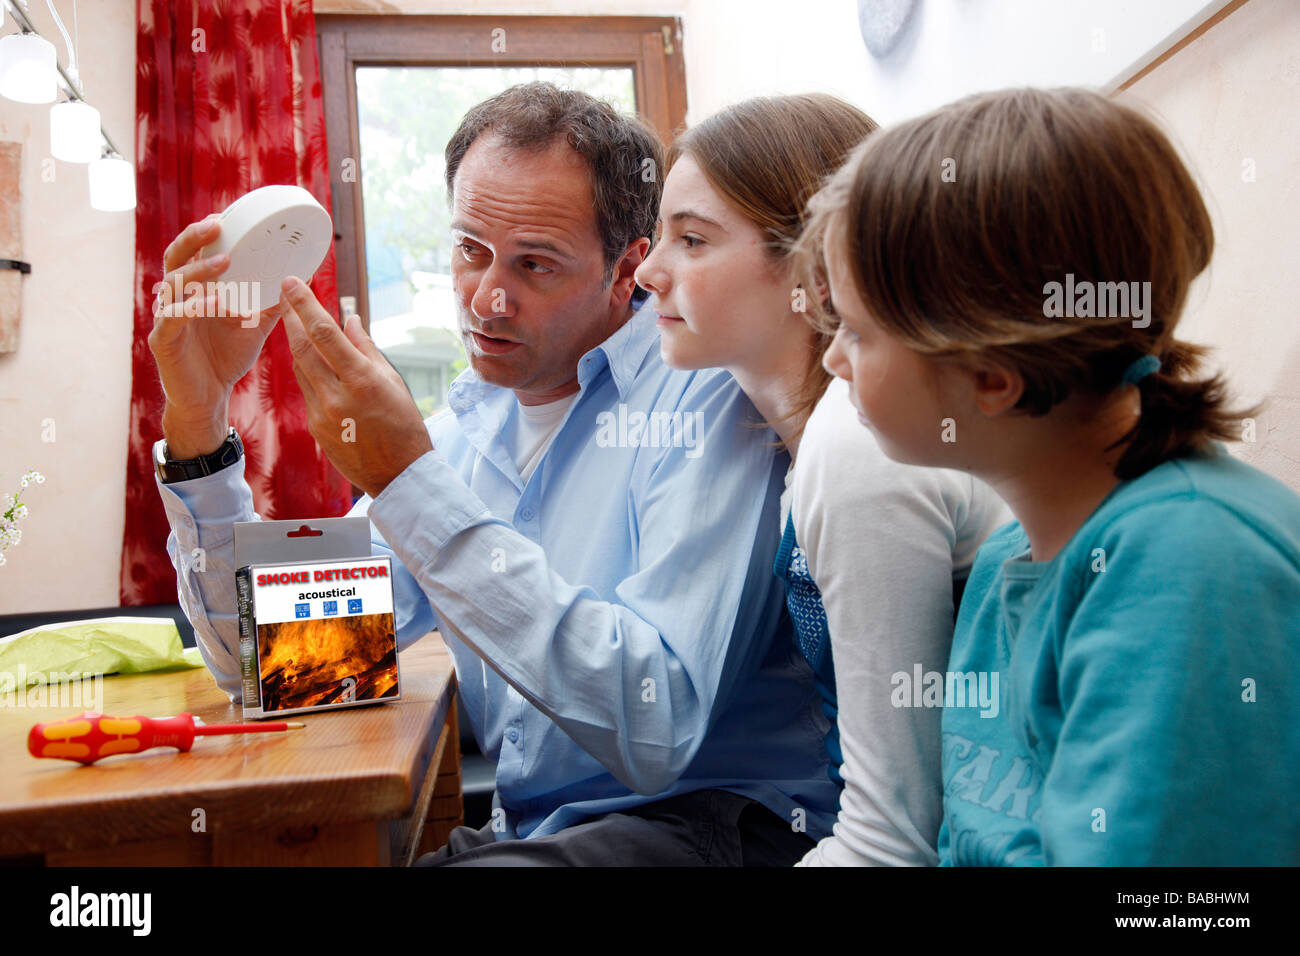 A father explains a smoke detector to his daugthers. Fire prevention in a private home - Stock Image